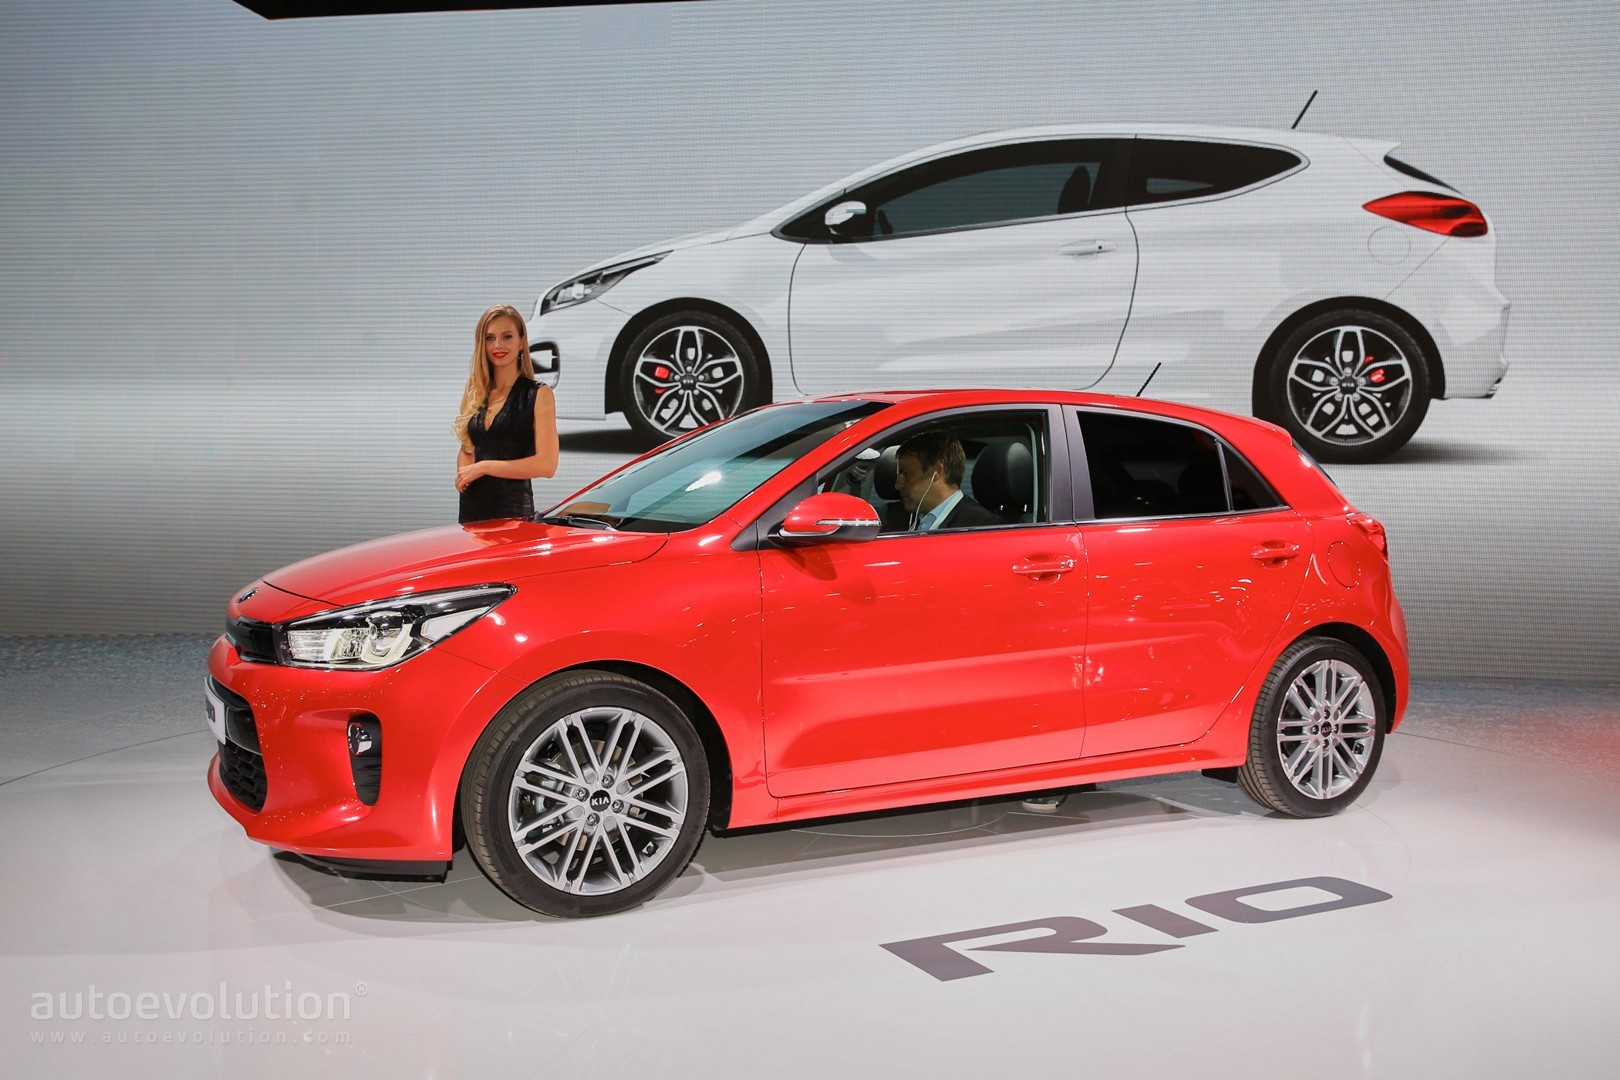 2017 kia rio makes paris debut looks good from both angles autoevolution. Black Bedroom Furniture Sets. Home Design Ideas